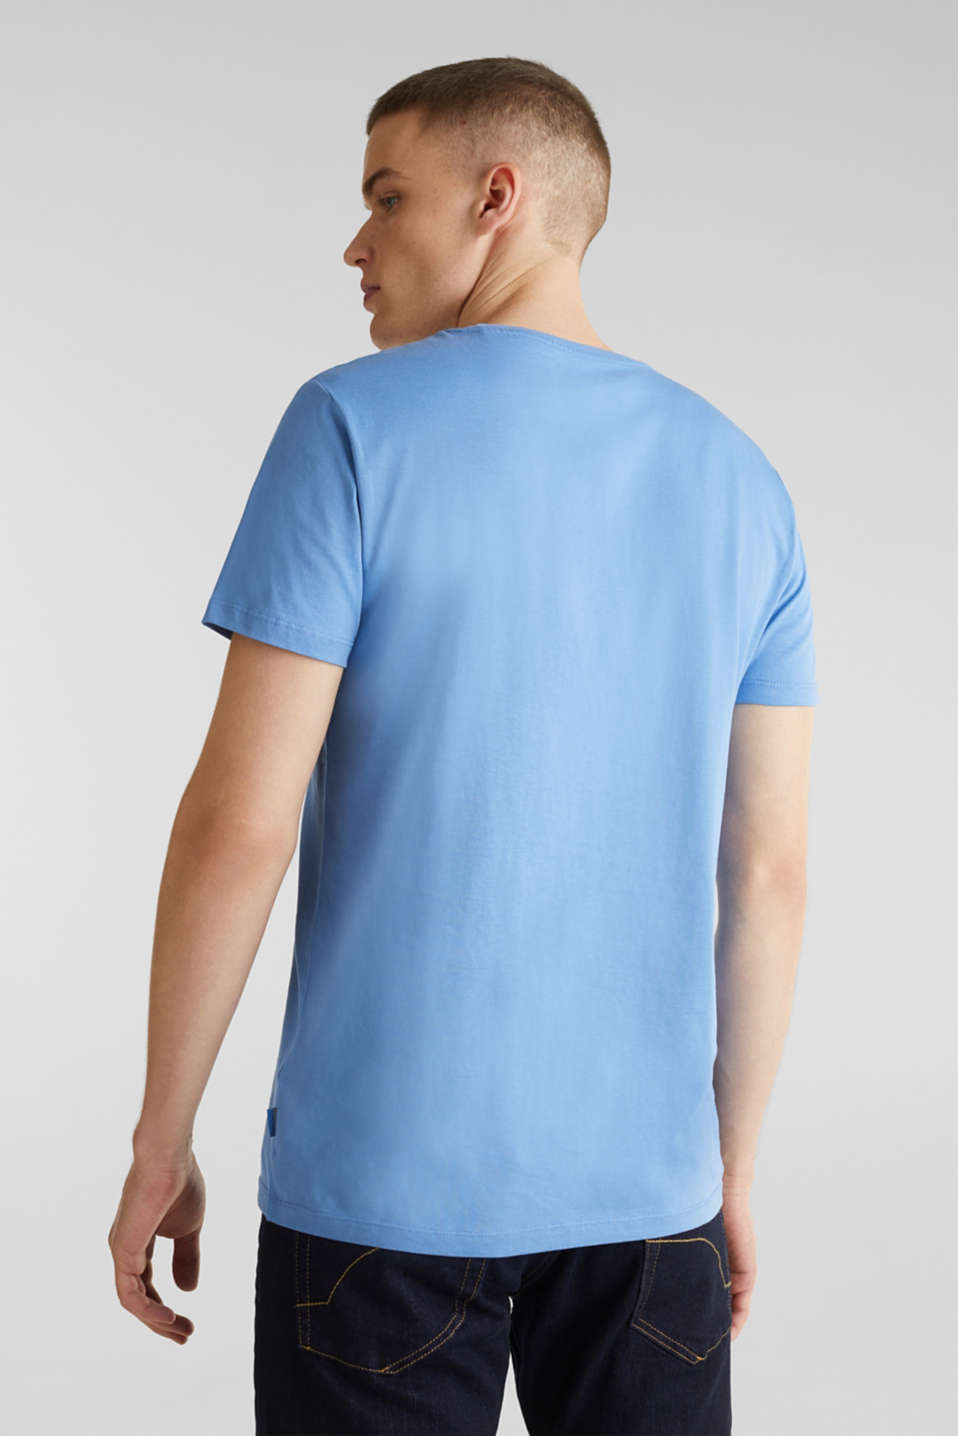 Jersey T-shirt with logo print, 100% cotton, LIGHT BLUE, detail image number 3